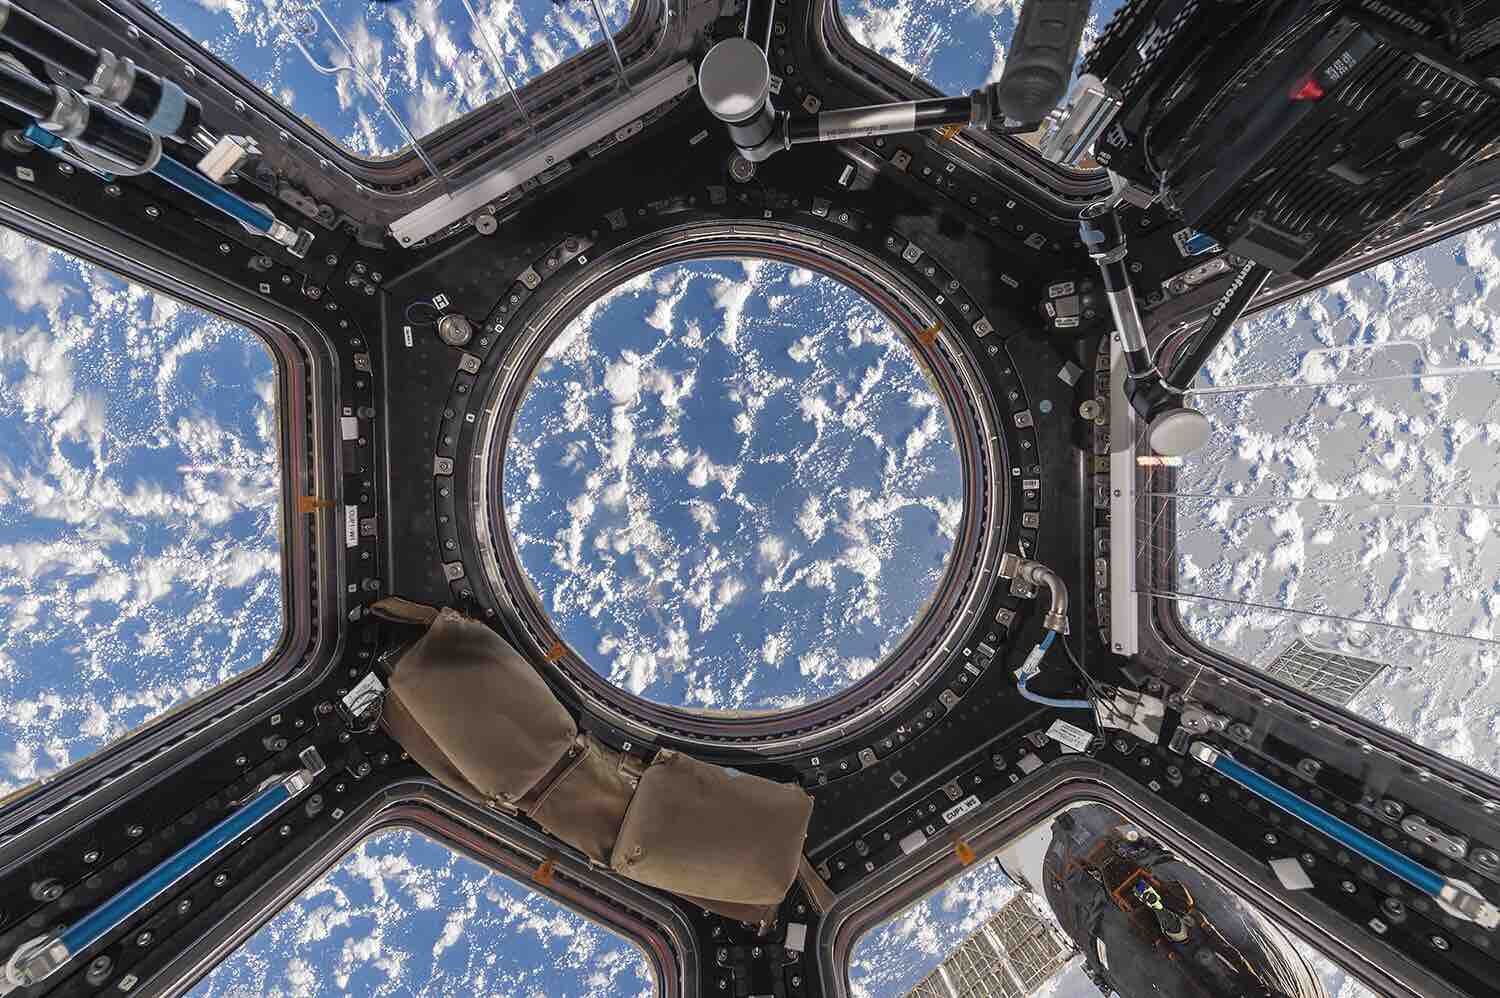 interior-space-by-roland-miller-and-paolo-nespoli-2